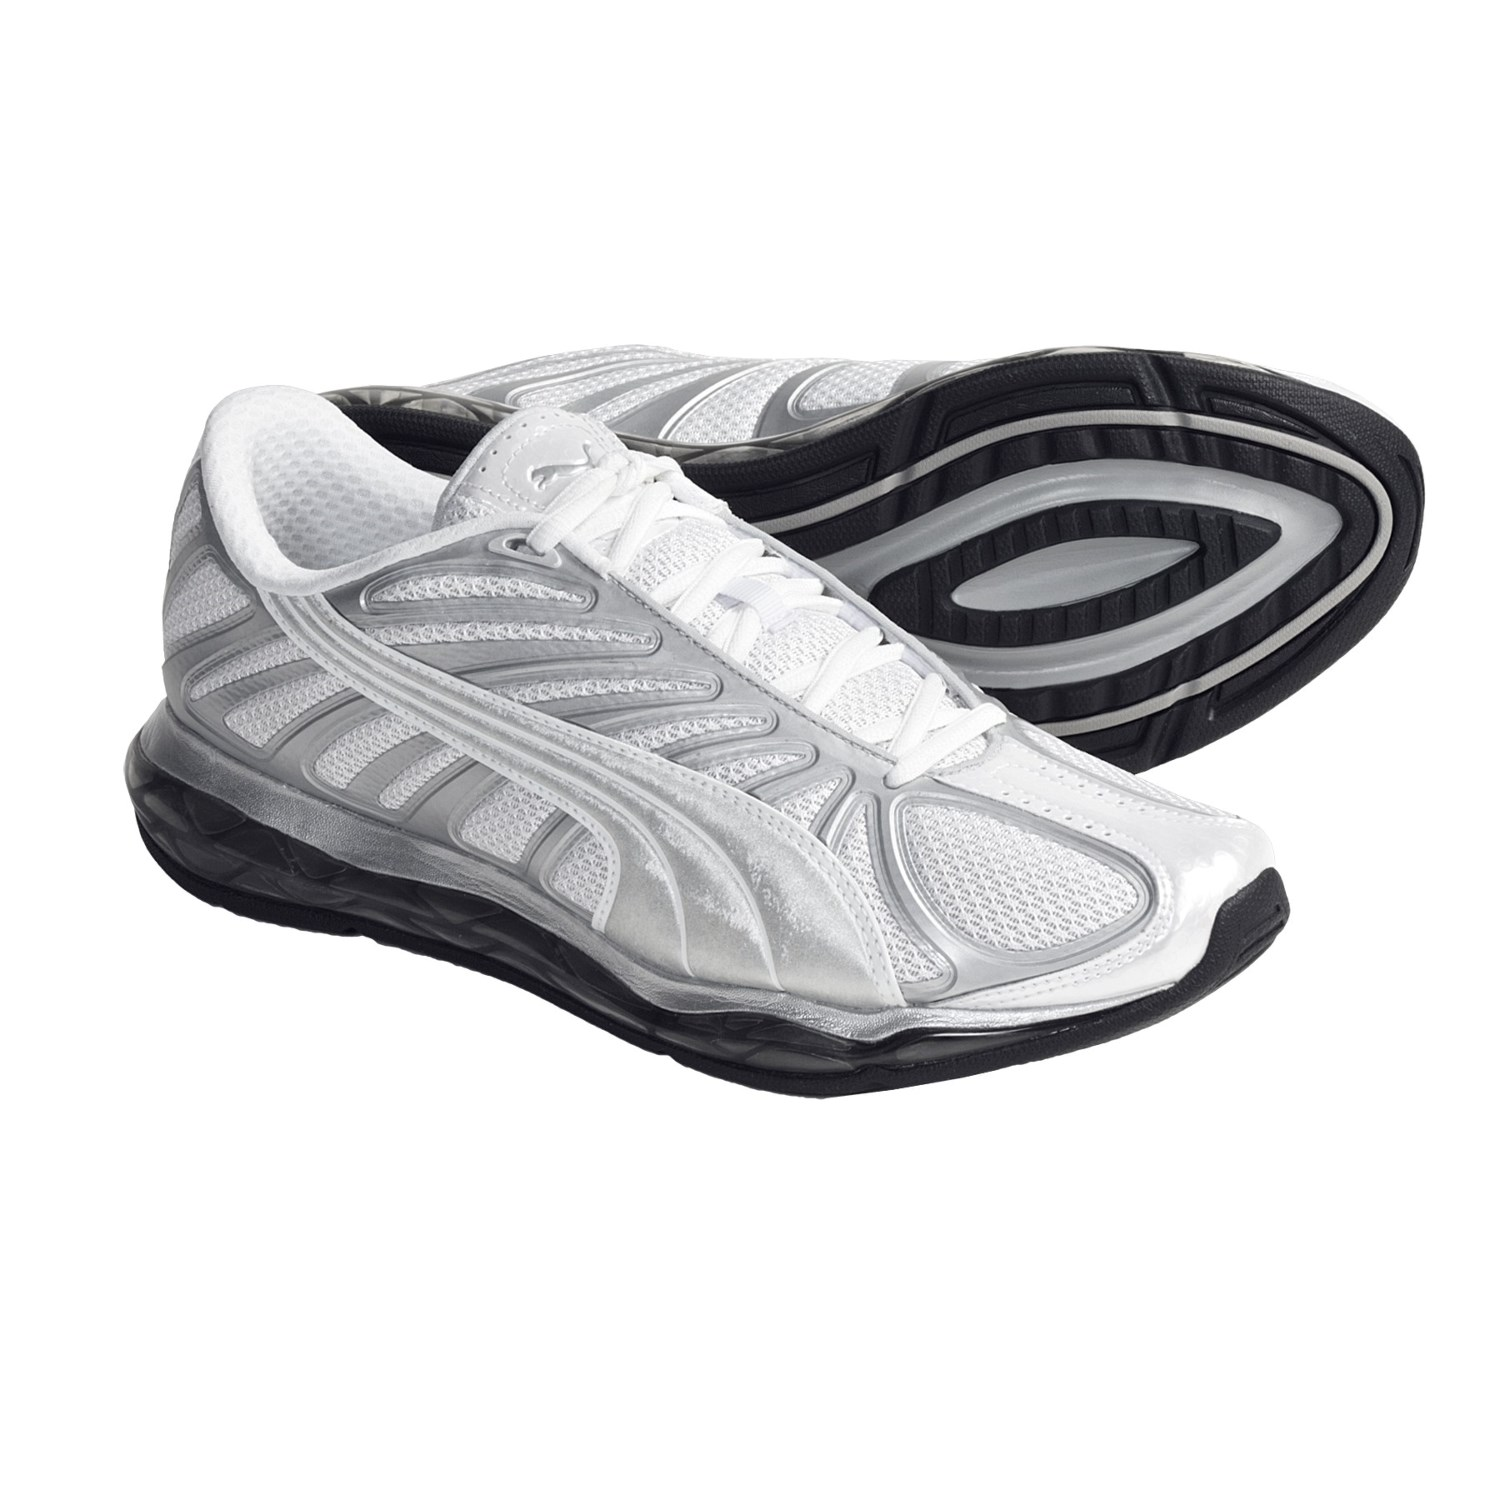 puma catsfor sale submited images